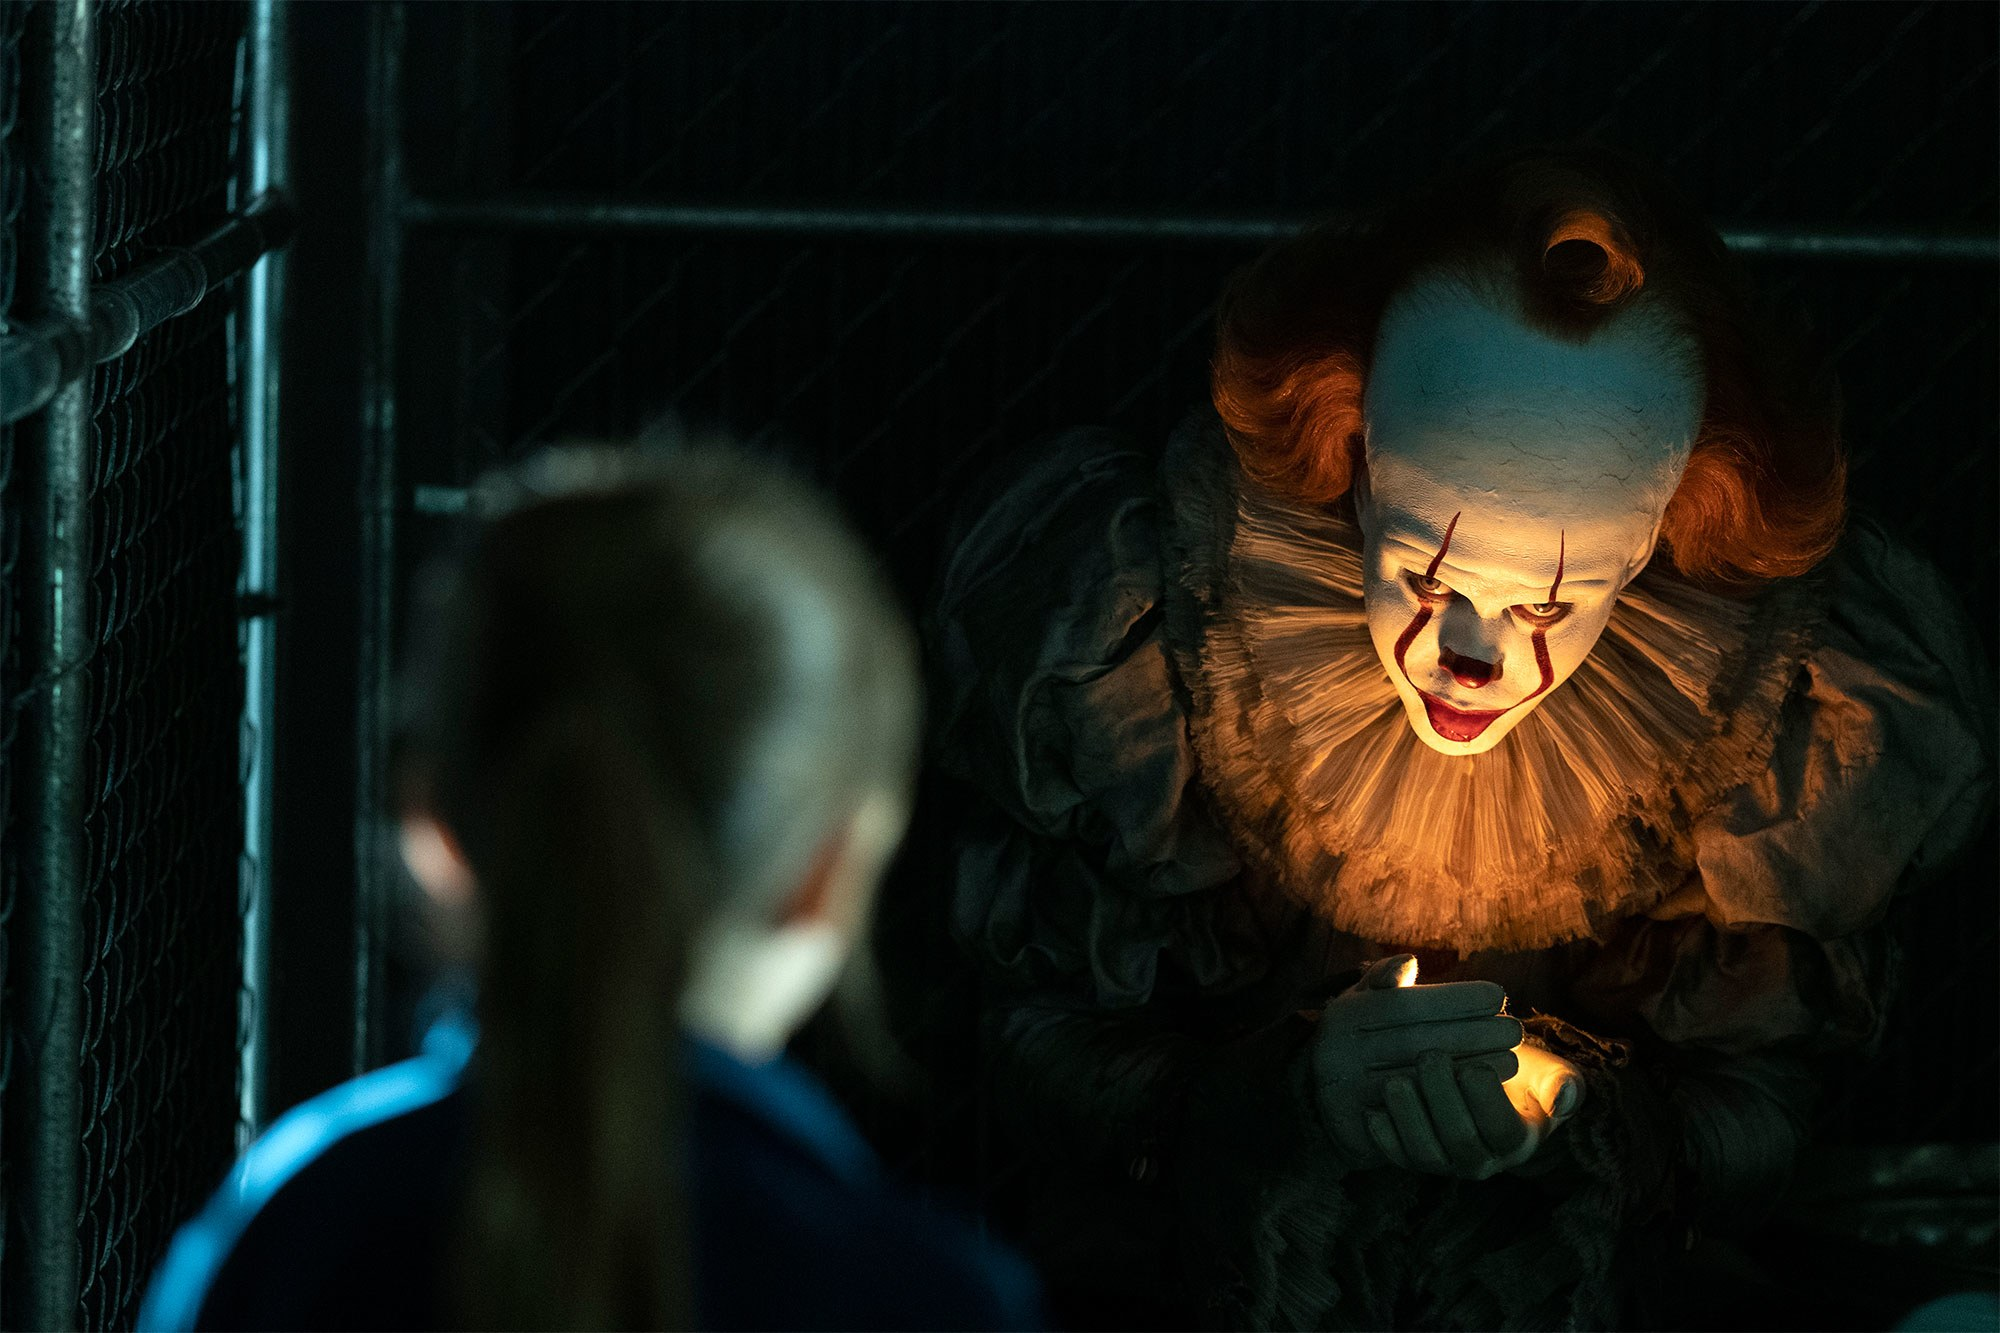 An image from the movie It. A terrifying clown looks at a girl.